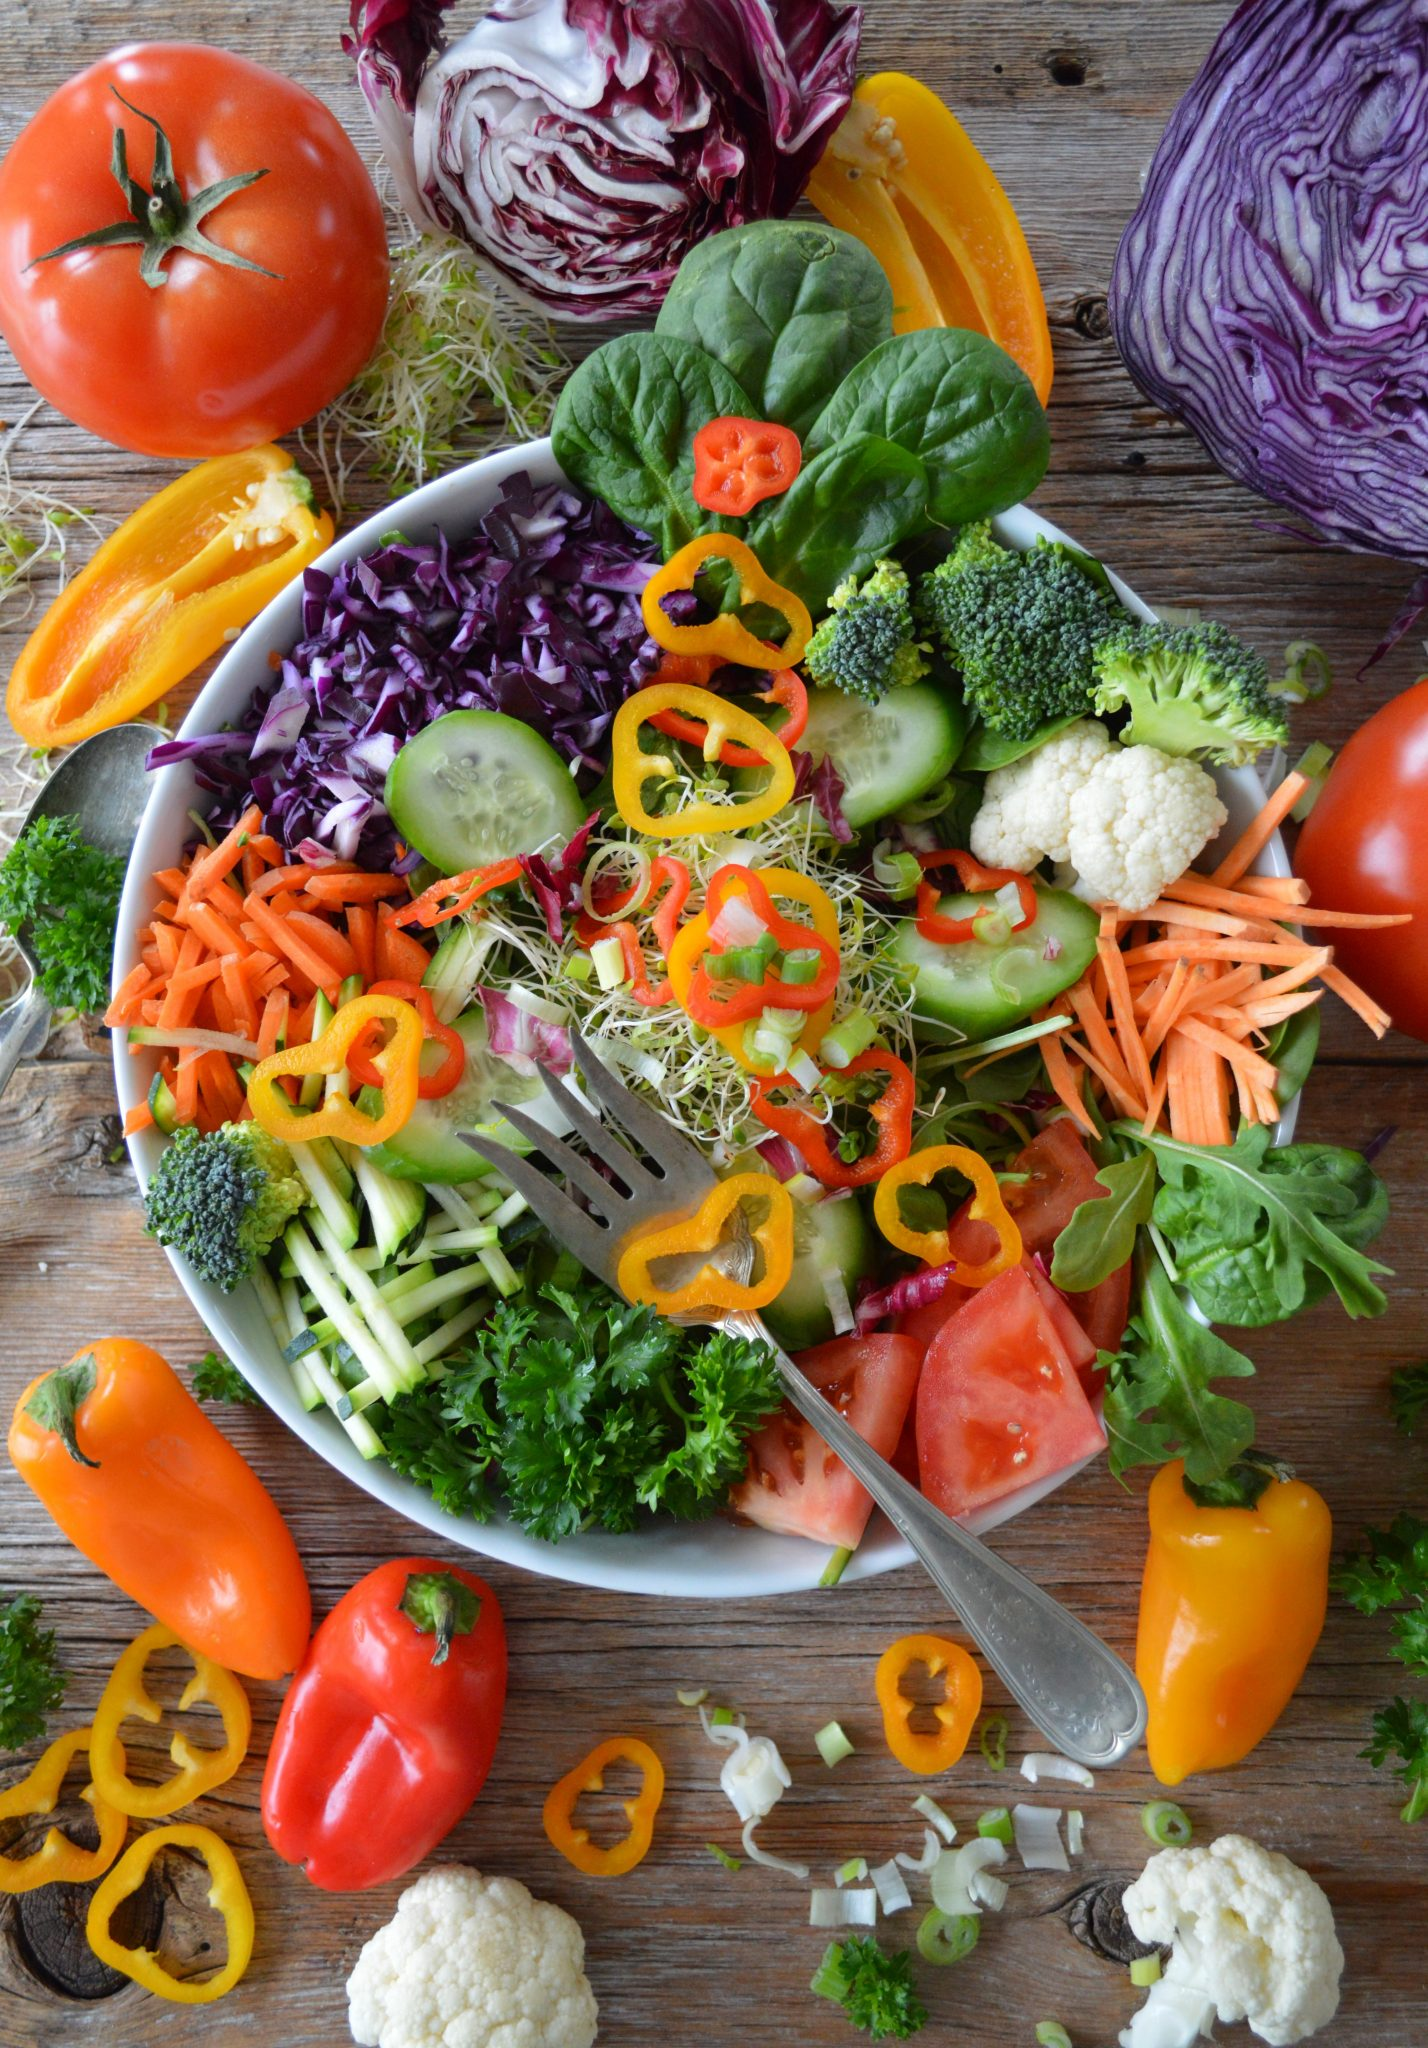 A colorful salad in a bowl